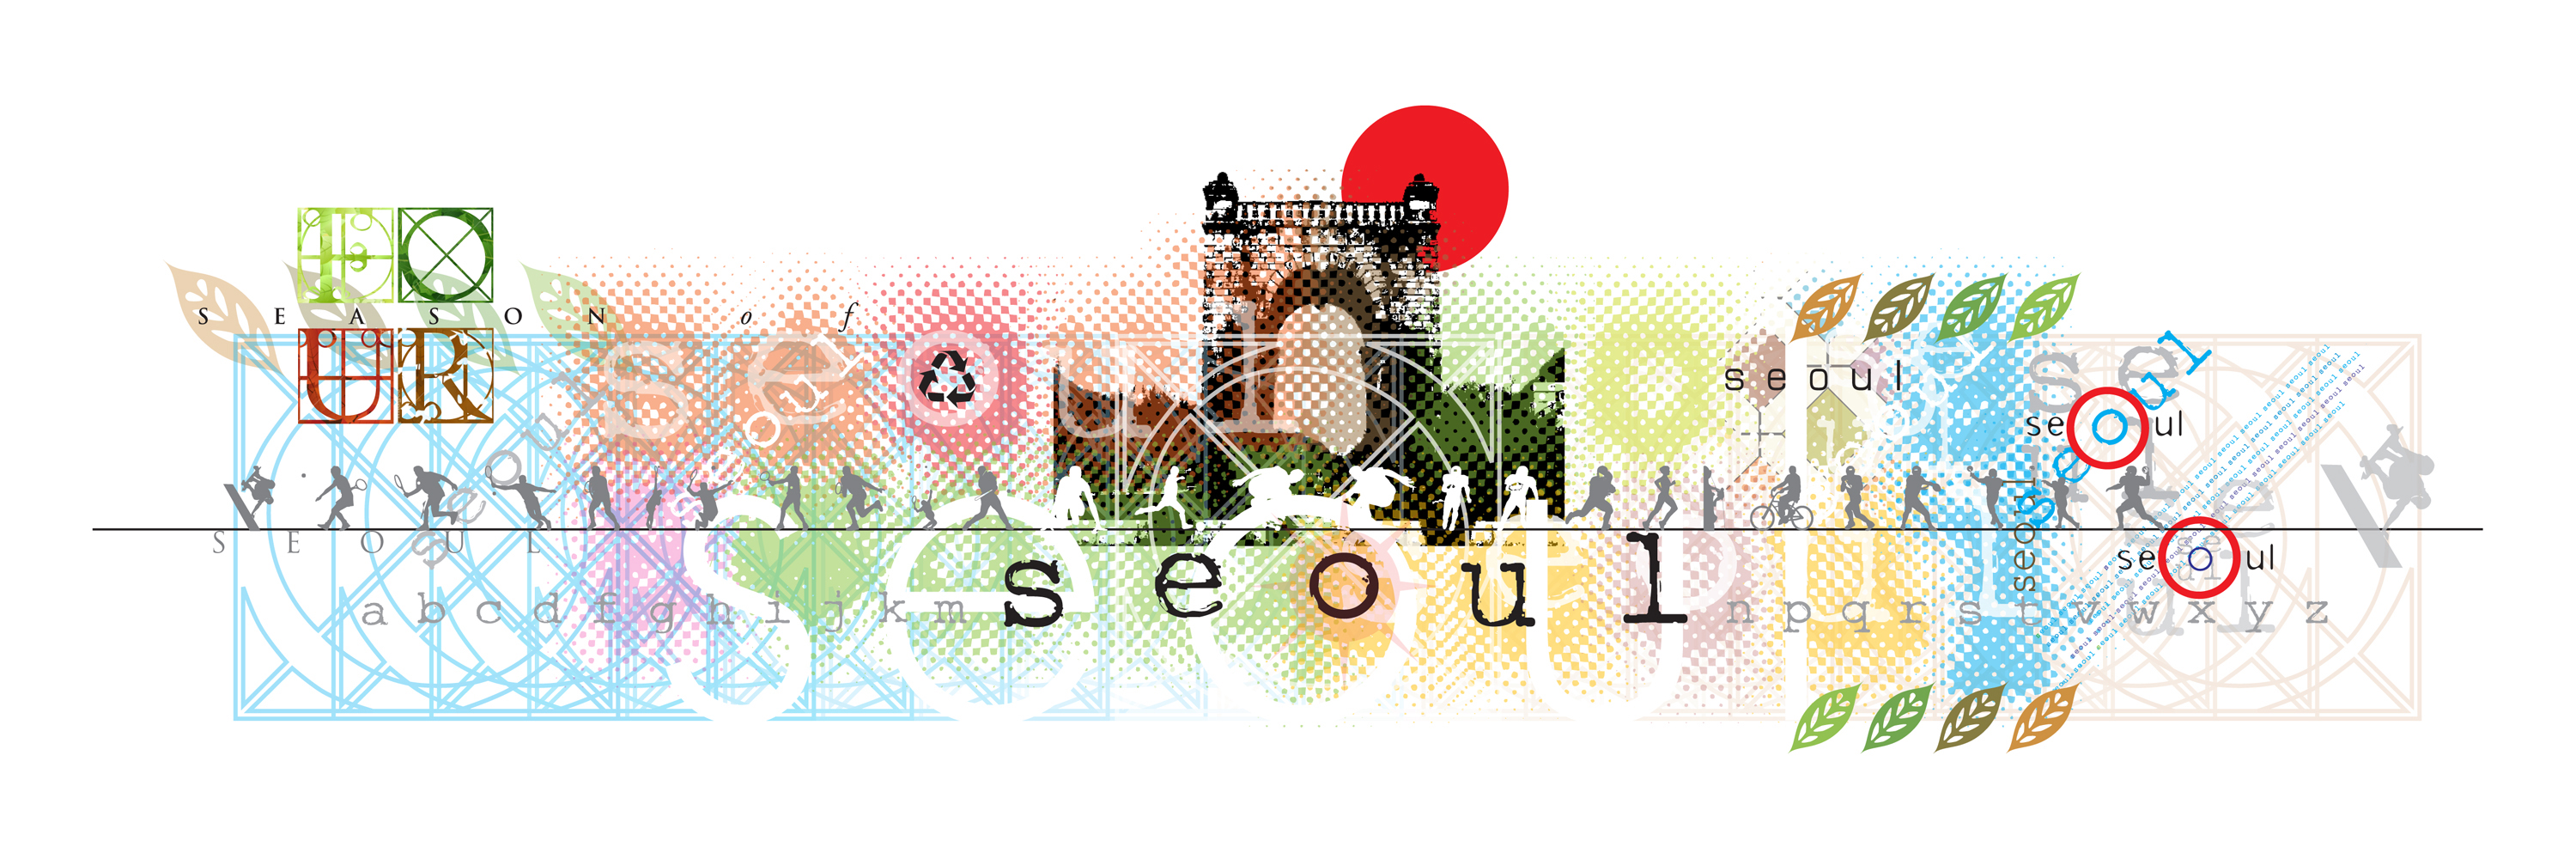 Seoul Typography Contest - Edgardo Galang